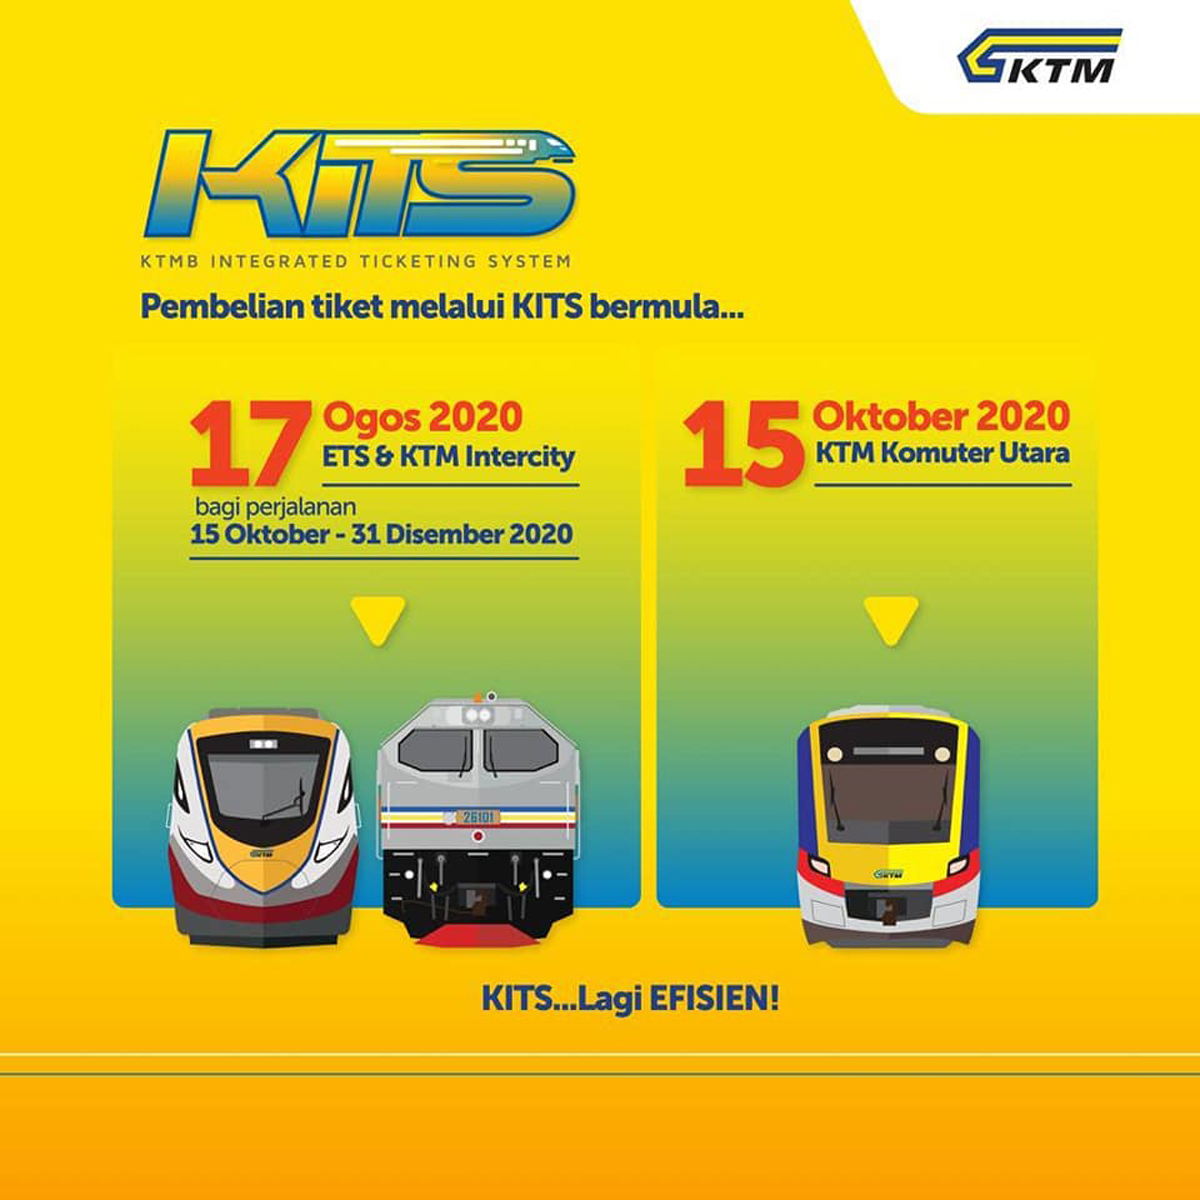 KTMB To Introduce New Online Ticketing System